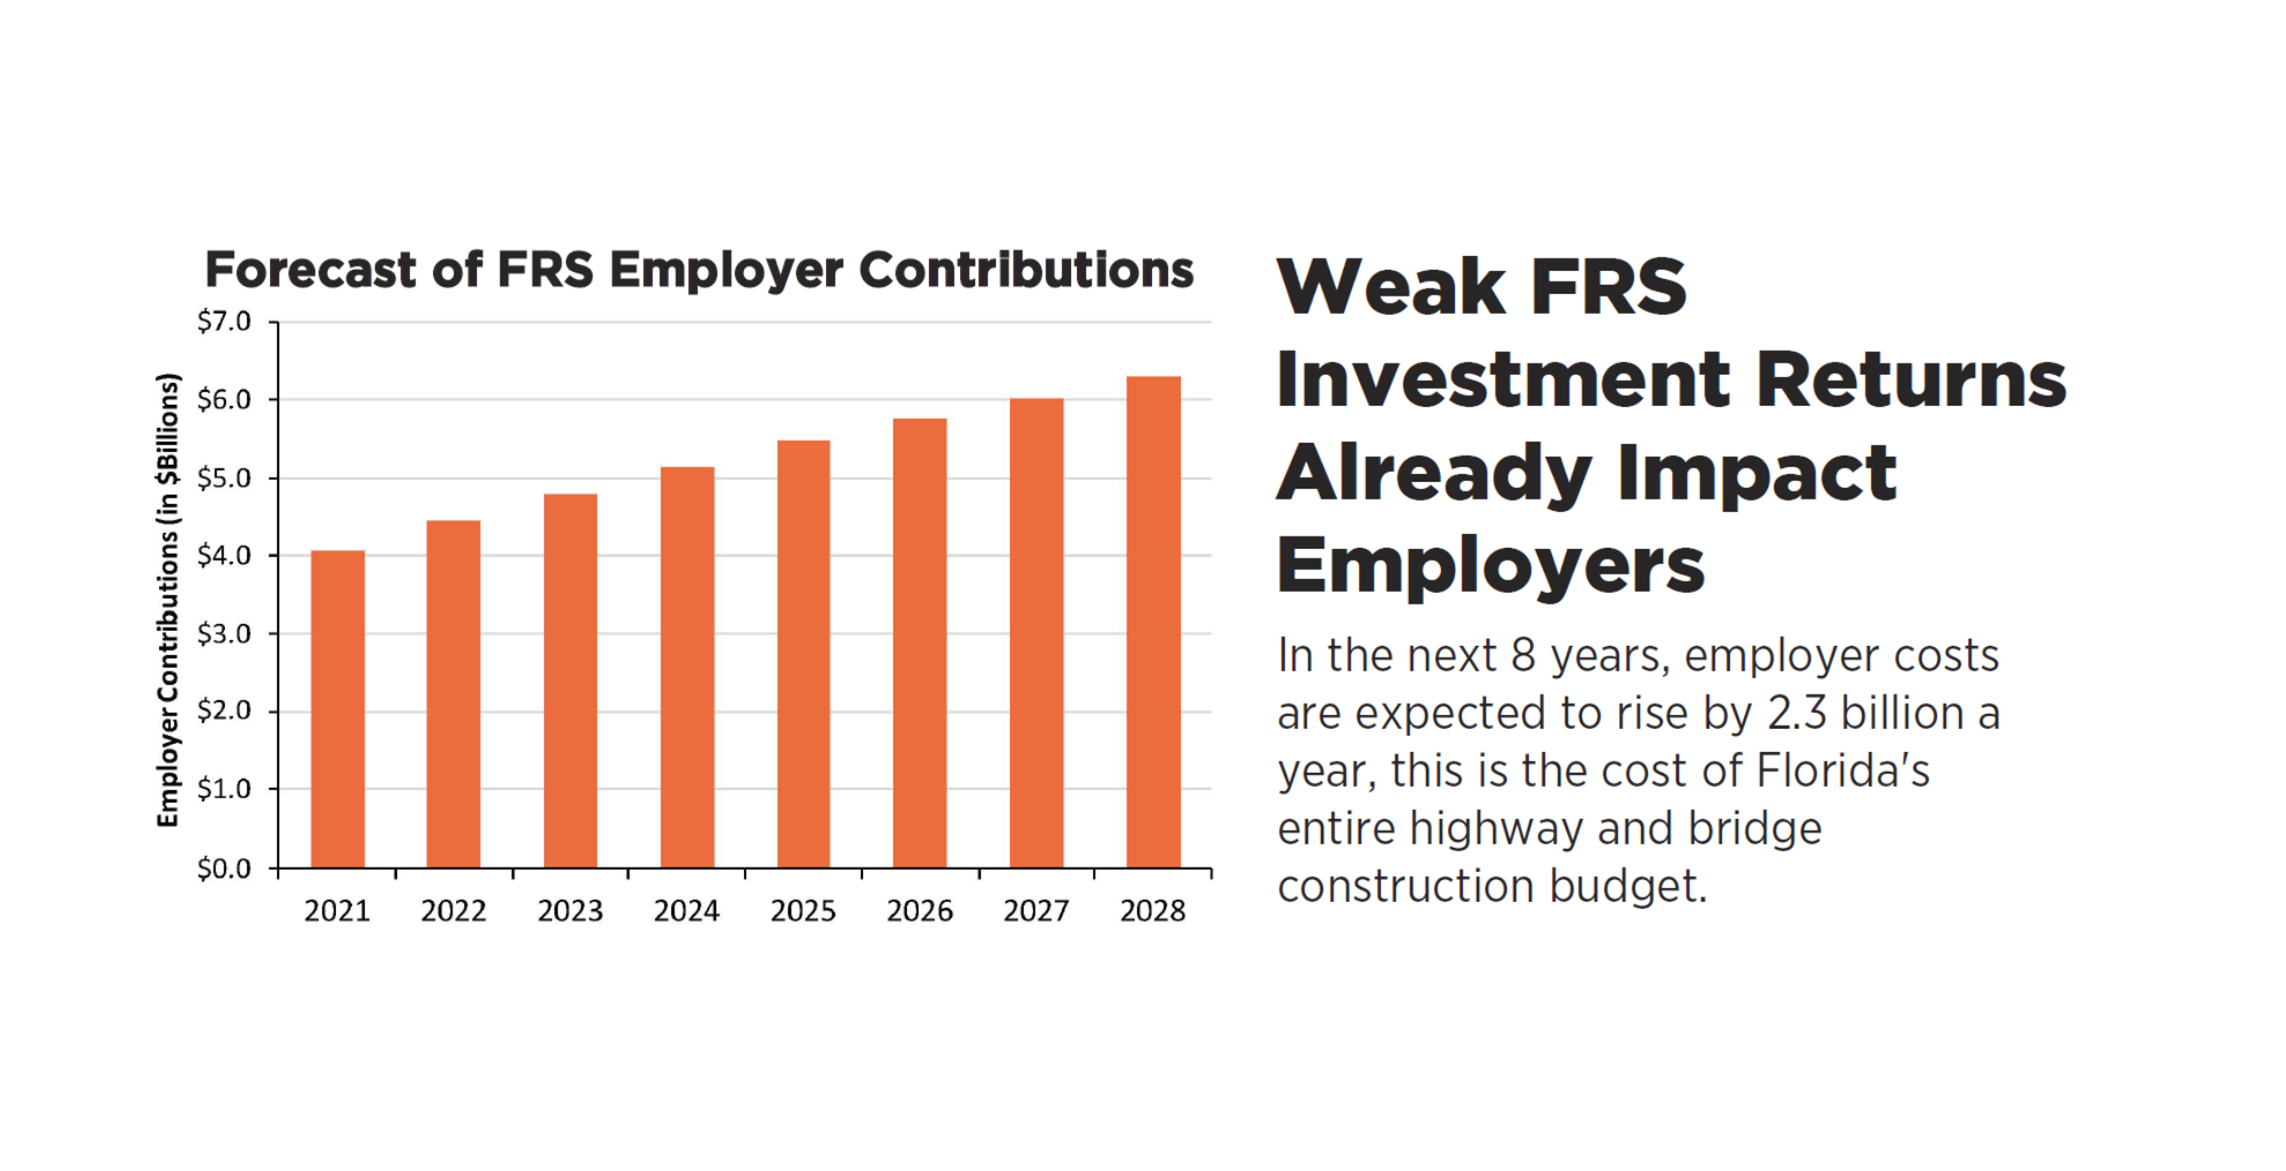 Florida Retirement Cost Increases Highlight the Need for Pension Reform